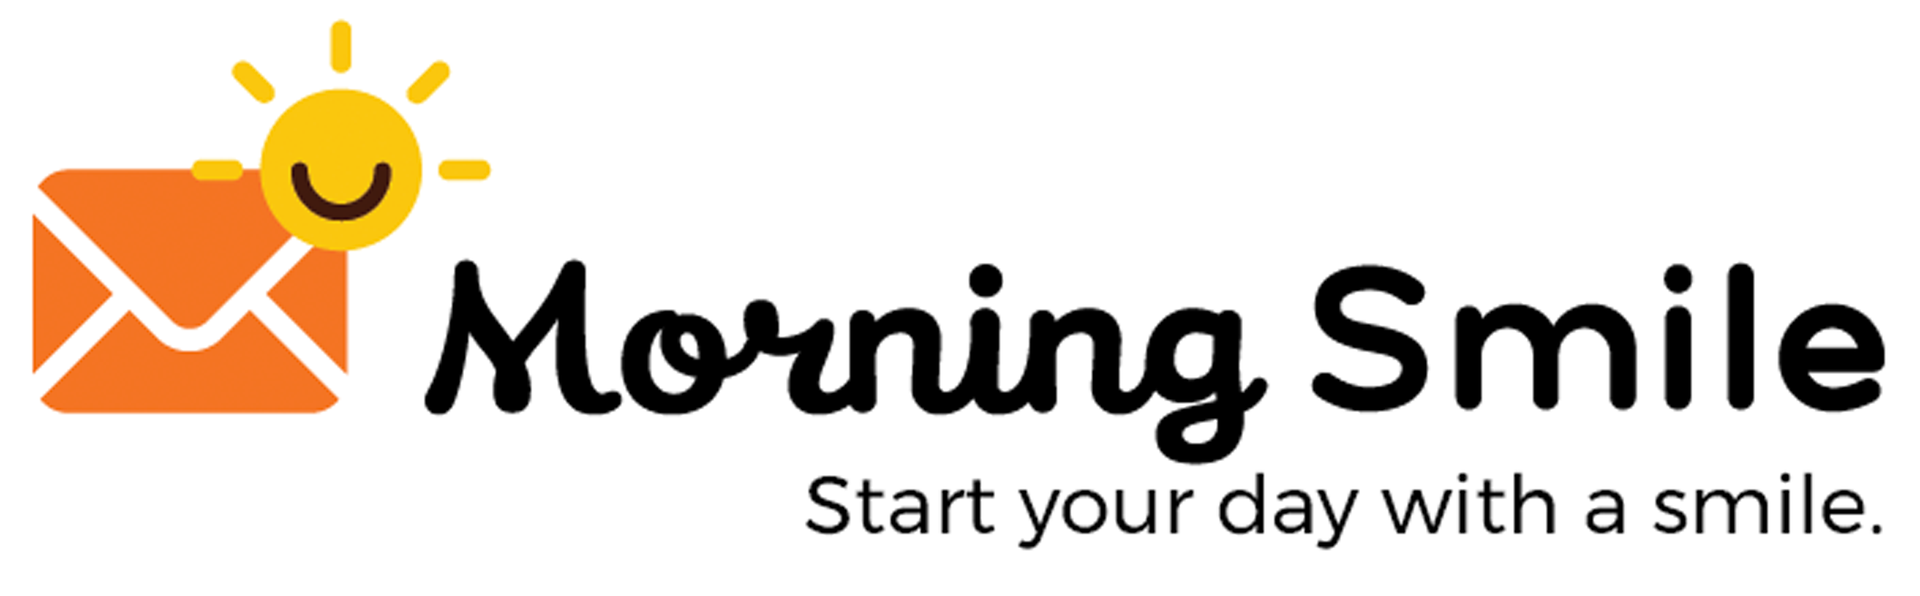 Morning Smile by InspireMore logo